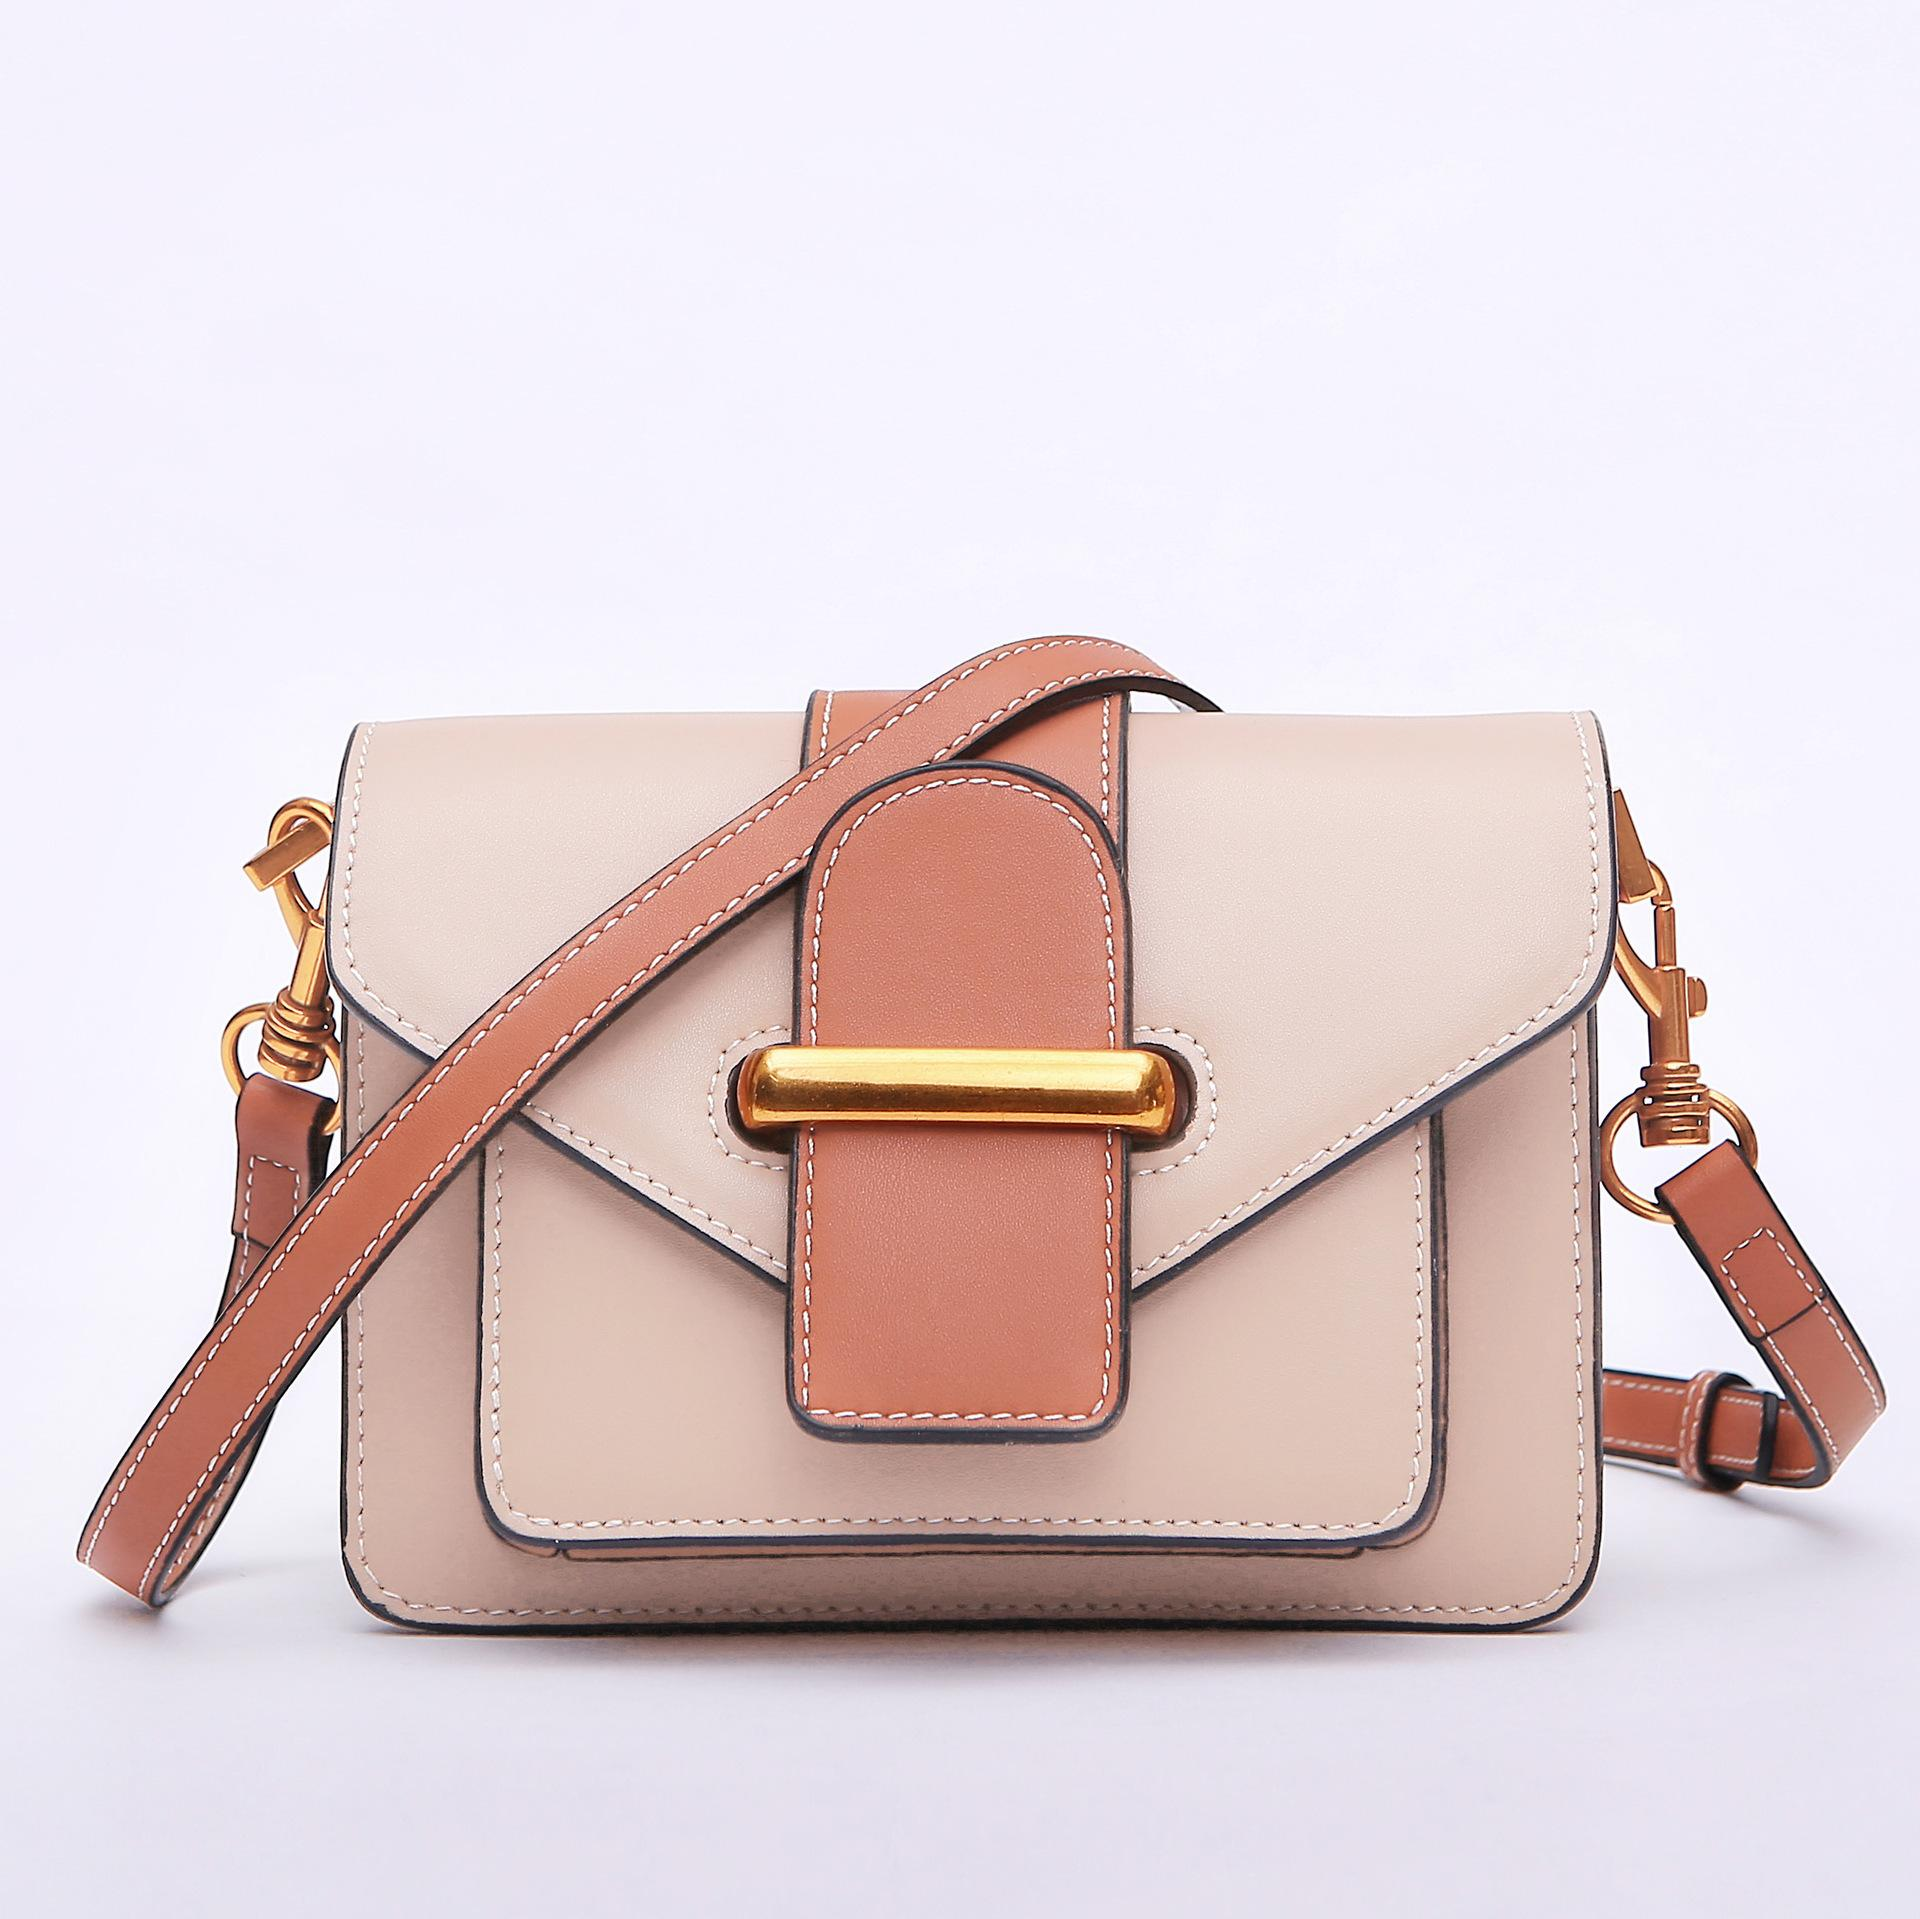 c4b7dca2cdc7 Charm2019 Organ Split Joint Woman Package High Archives Taobao Ma Am Genuine  Leather Bag Red Handbags Pink Handbags From Attractivebag